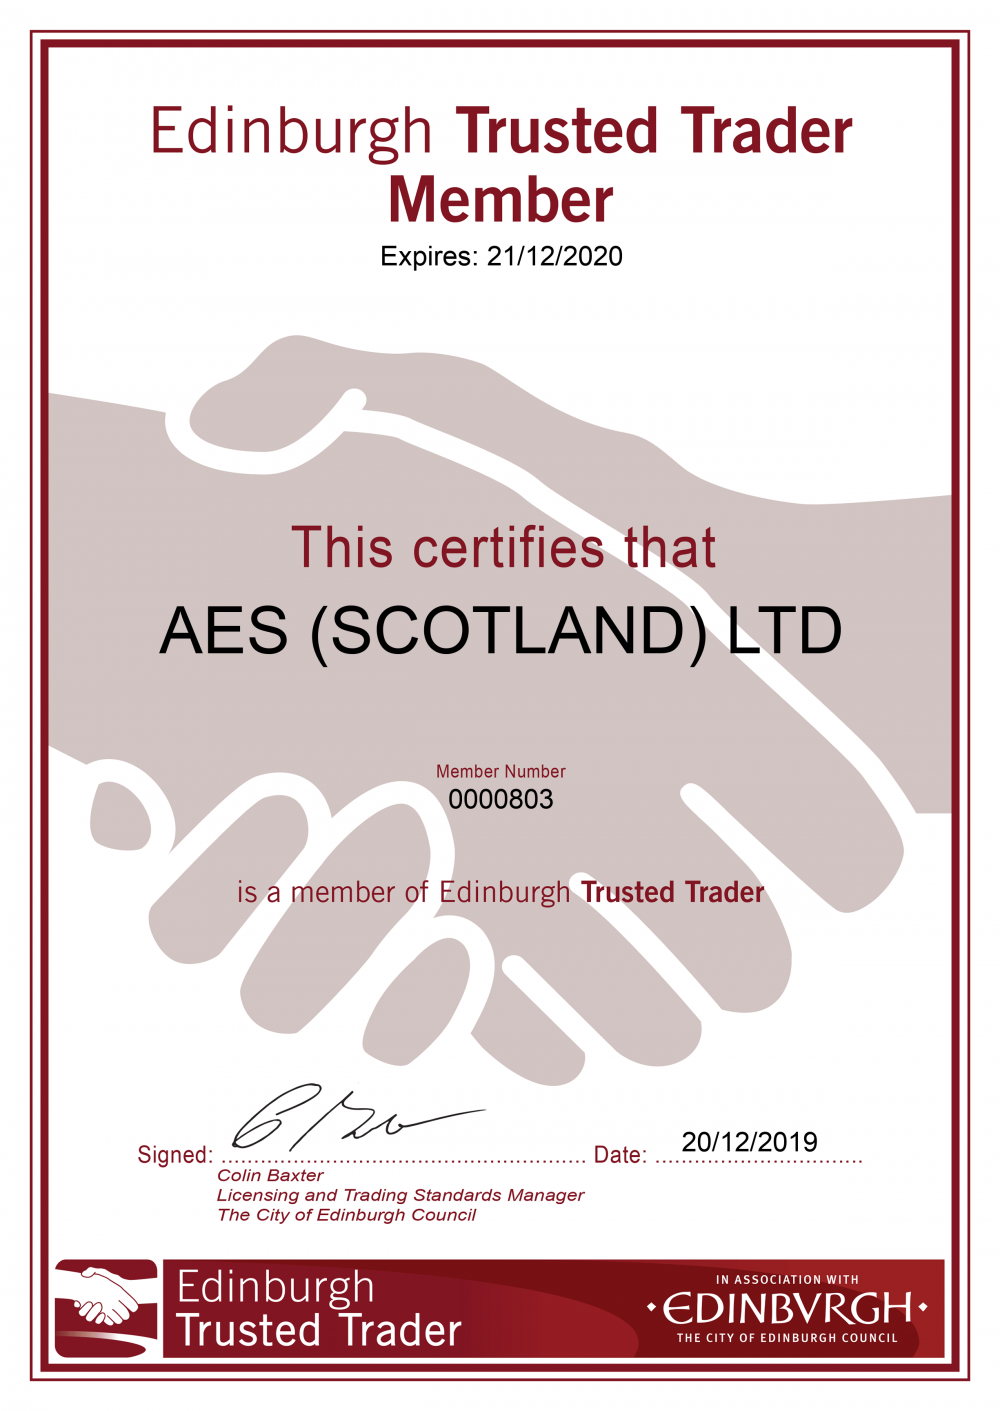 AES (SCOTLAND) LTD Edinburgh Trusted Trader